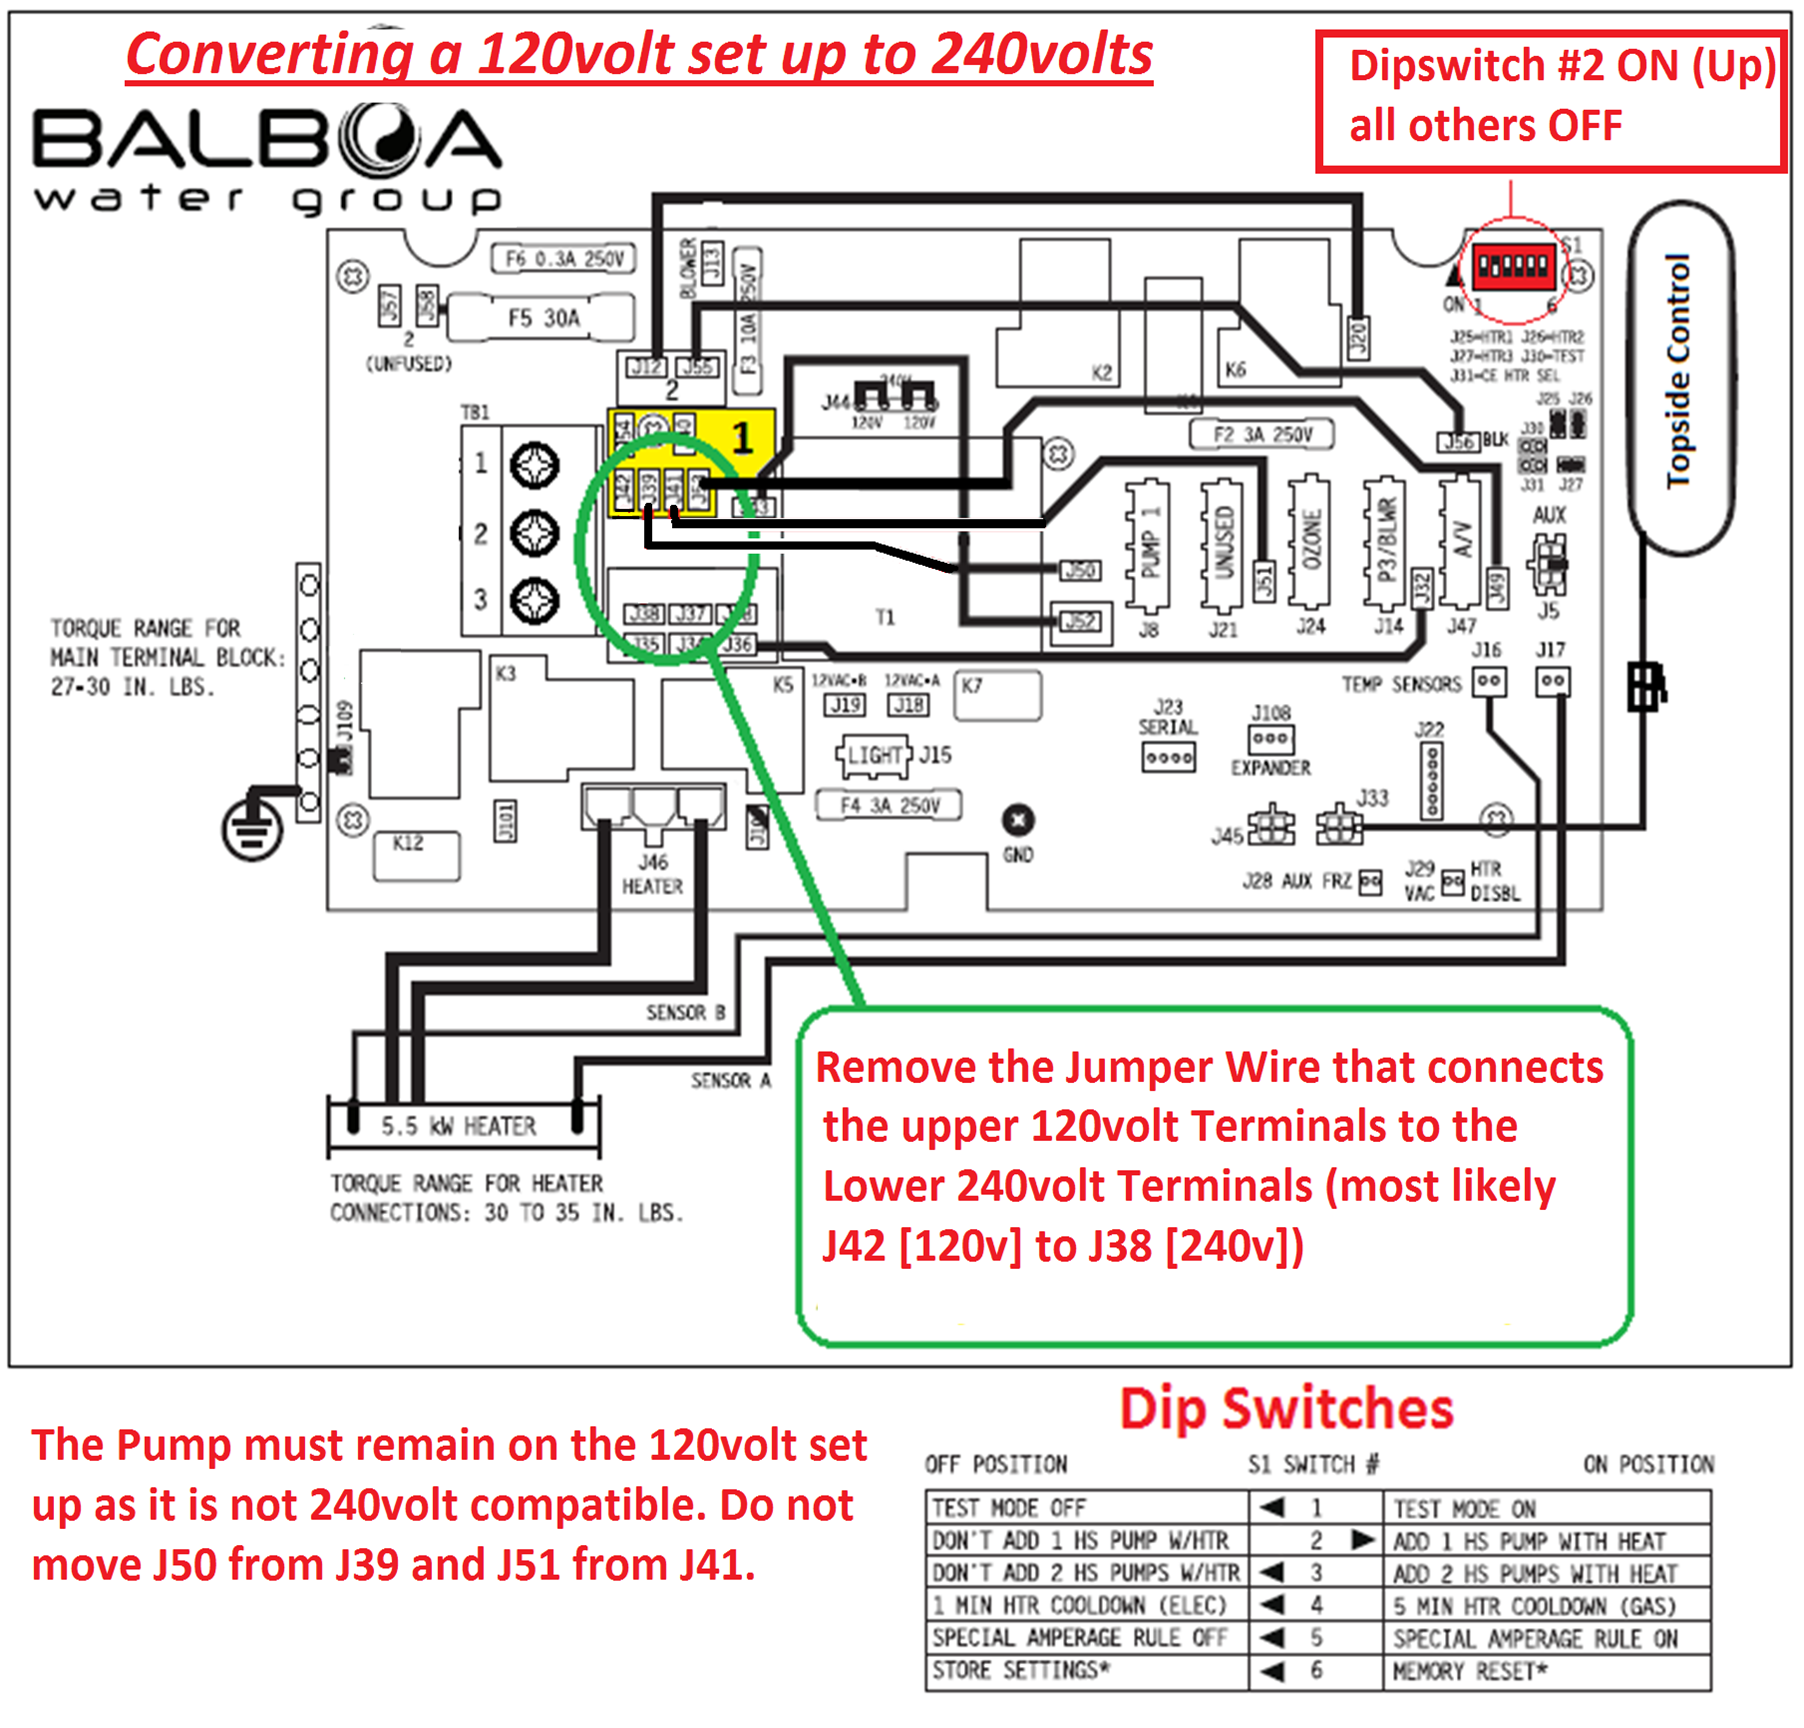 Electrical Installation Converting A V Balboa BP To V - Balboa hot tub wiring diagram